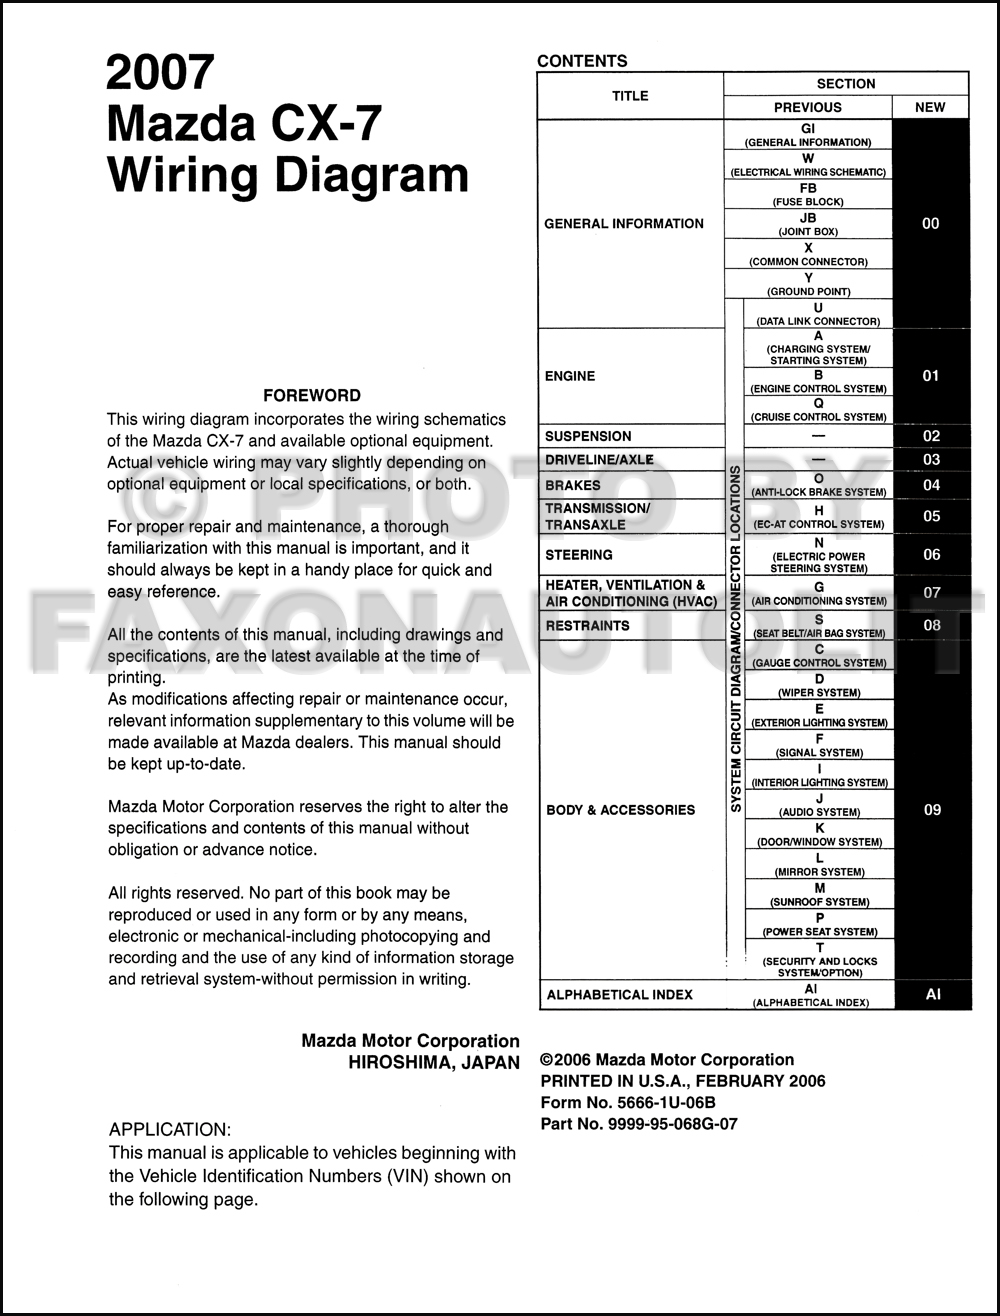 Mazda 6 Window Wiring Diagram Library Nissan Pdf 2007 Cx 7 Manual Original Rh Faxonautoliterature Com 3